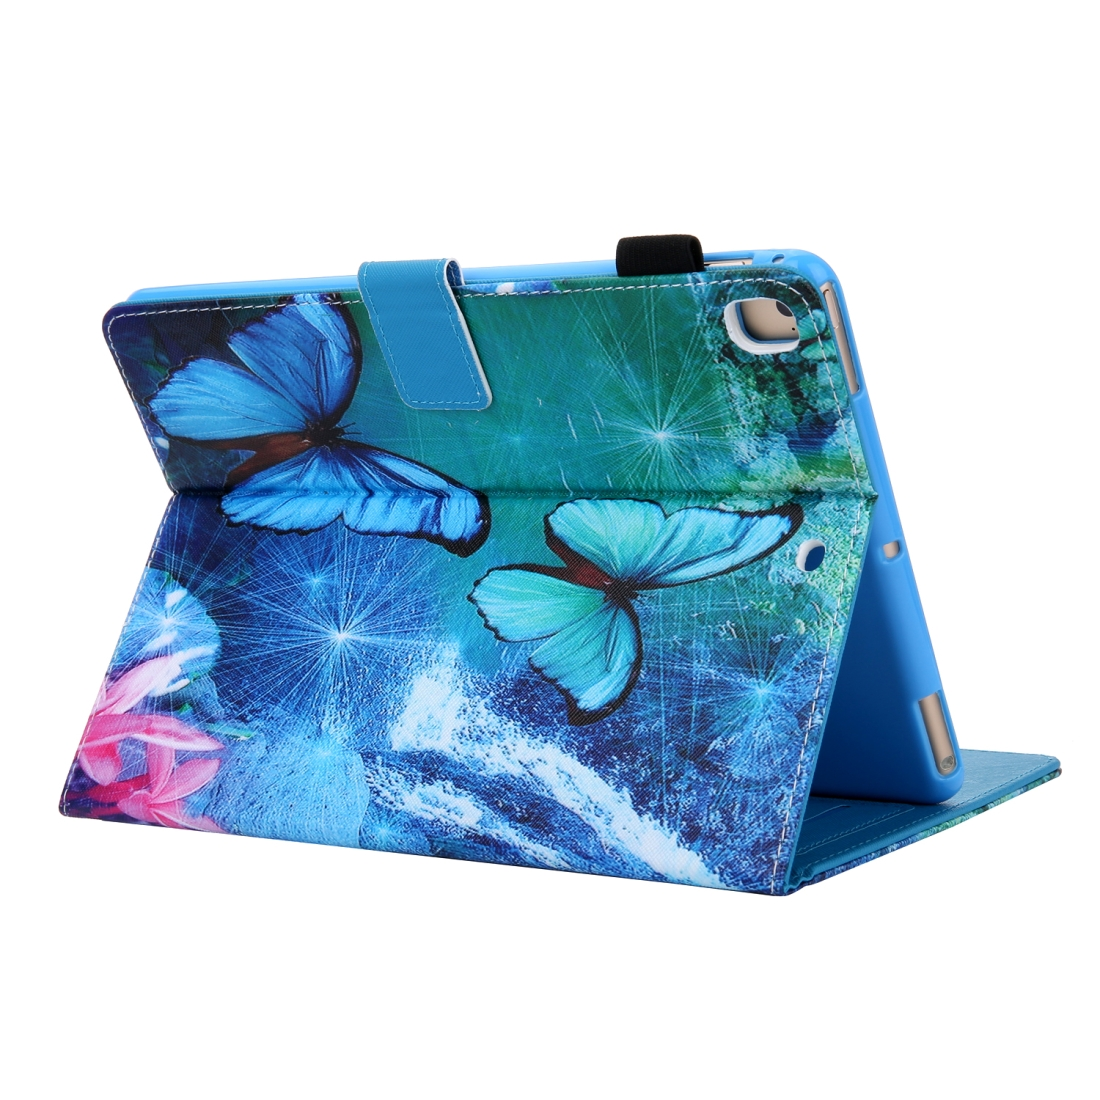 3D Leather Case with Sleeve  iPad 9.7 Case (Waterfall Butterfly)